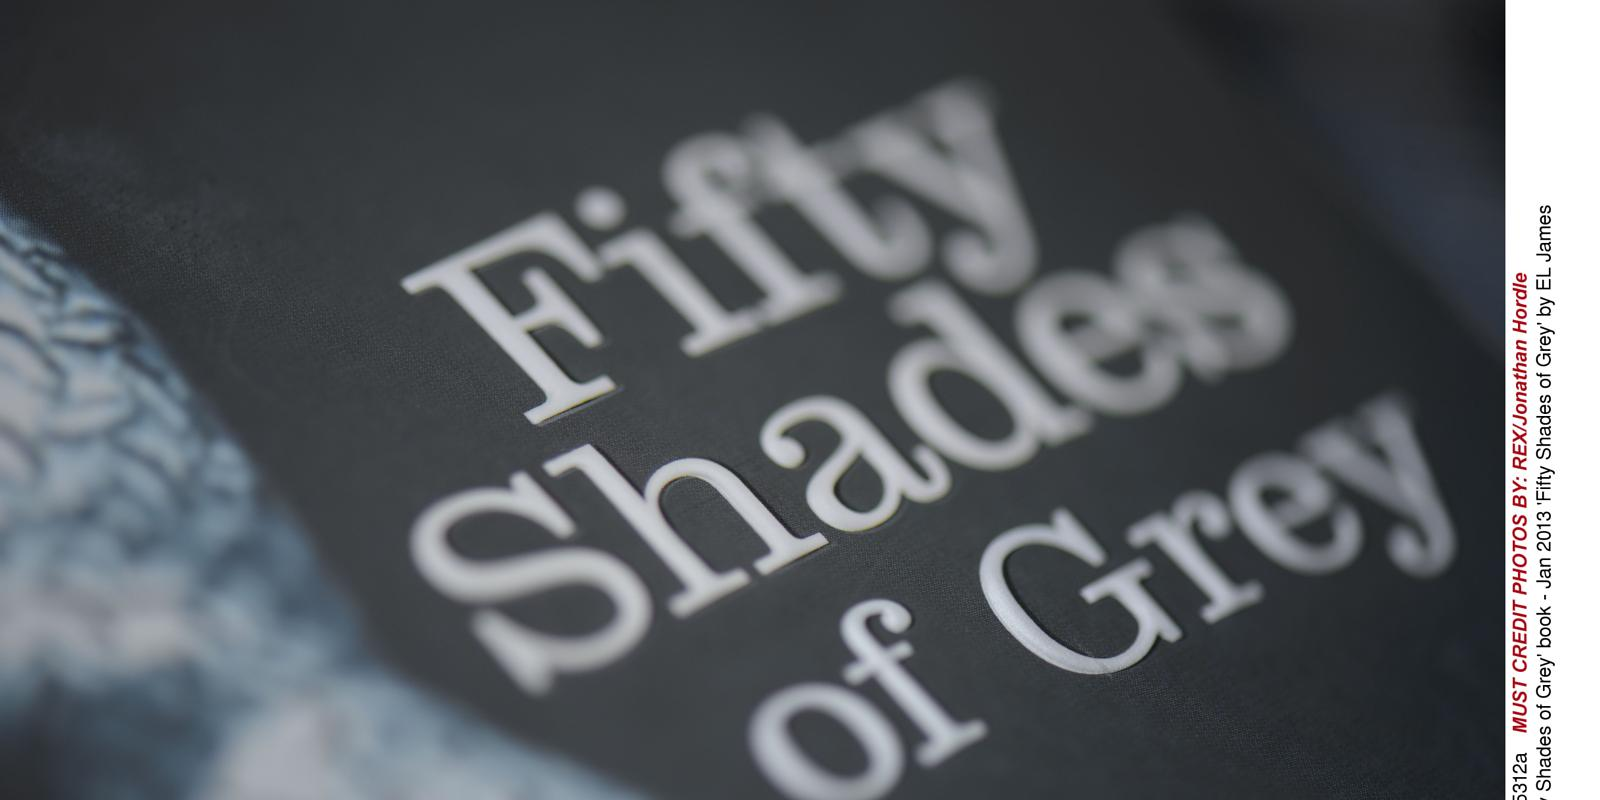 sample shades of grey whimsy wise events fifty shades of grey  shades of grey funniest quotes from el james s novel 39 fifty shades of